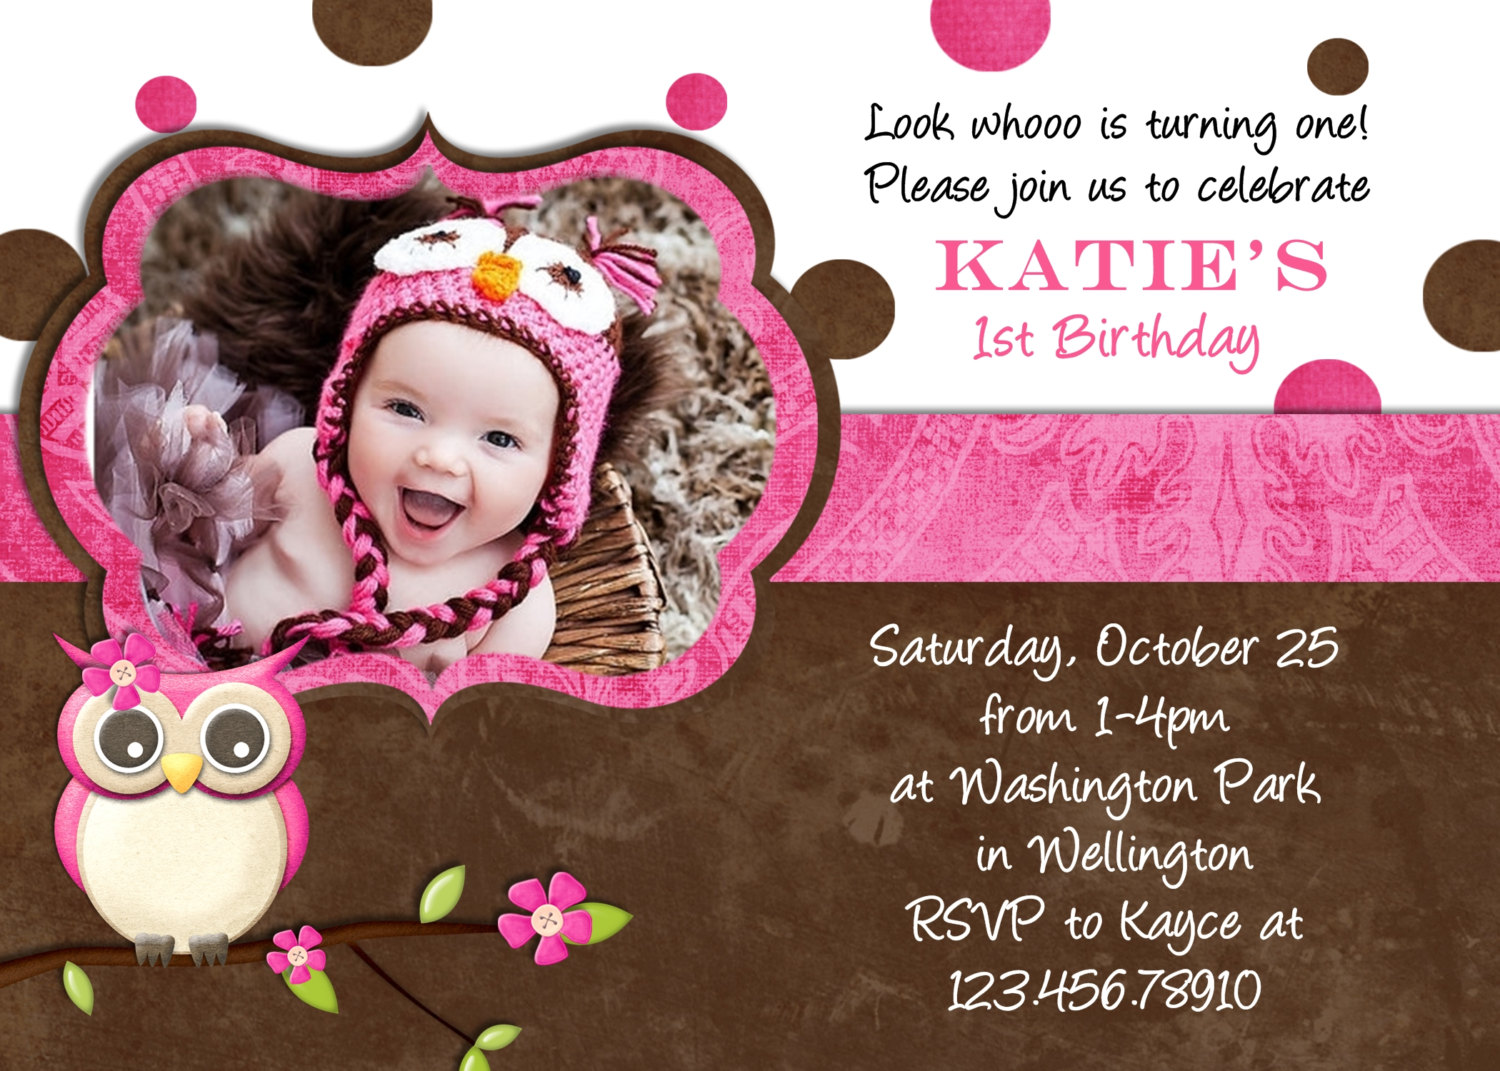 baby birthday card design ; Beautiful-Birthday-Invitation-Cards-Designs-57-With-Additional-Free-Baby-Shower-Invitation-Cards-with-Birthday-Invitation-Cards-Designs